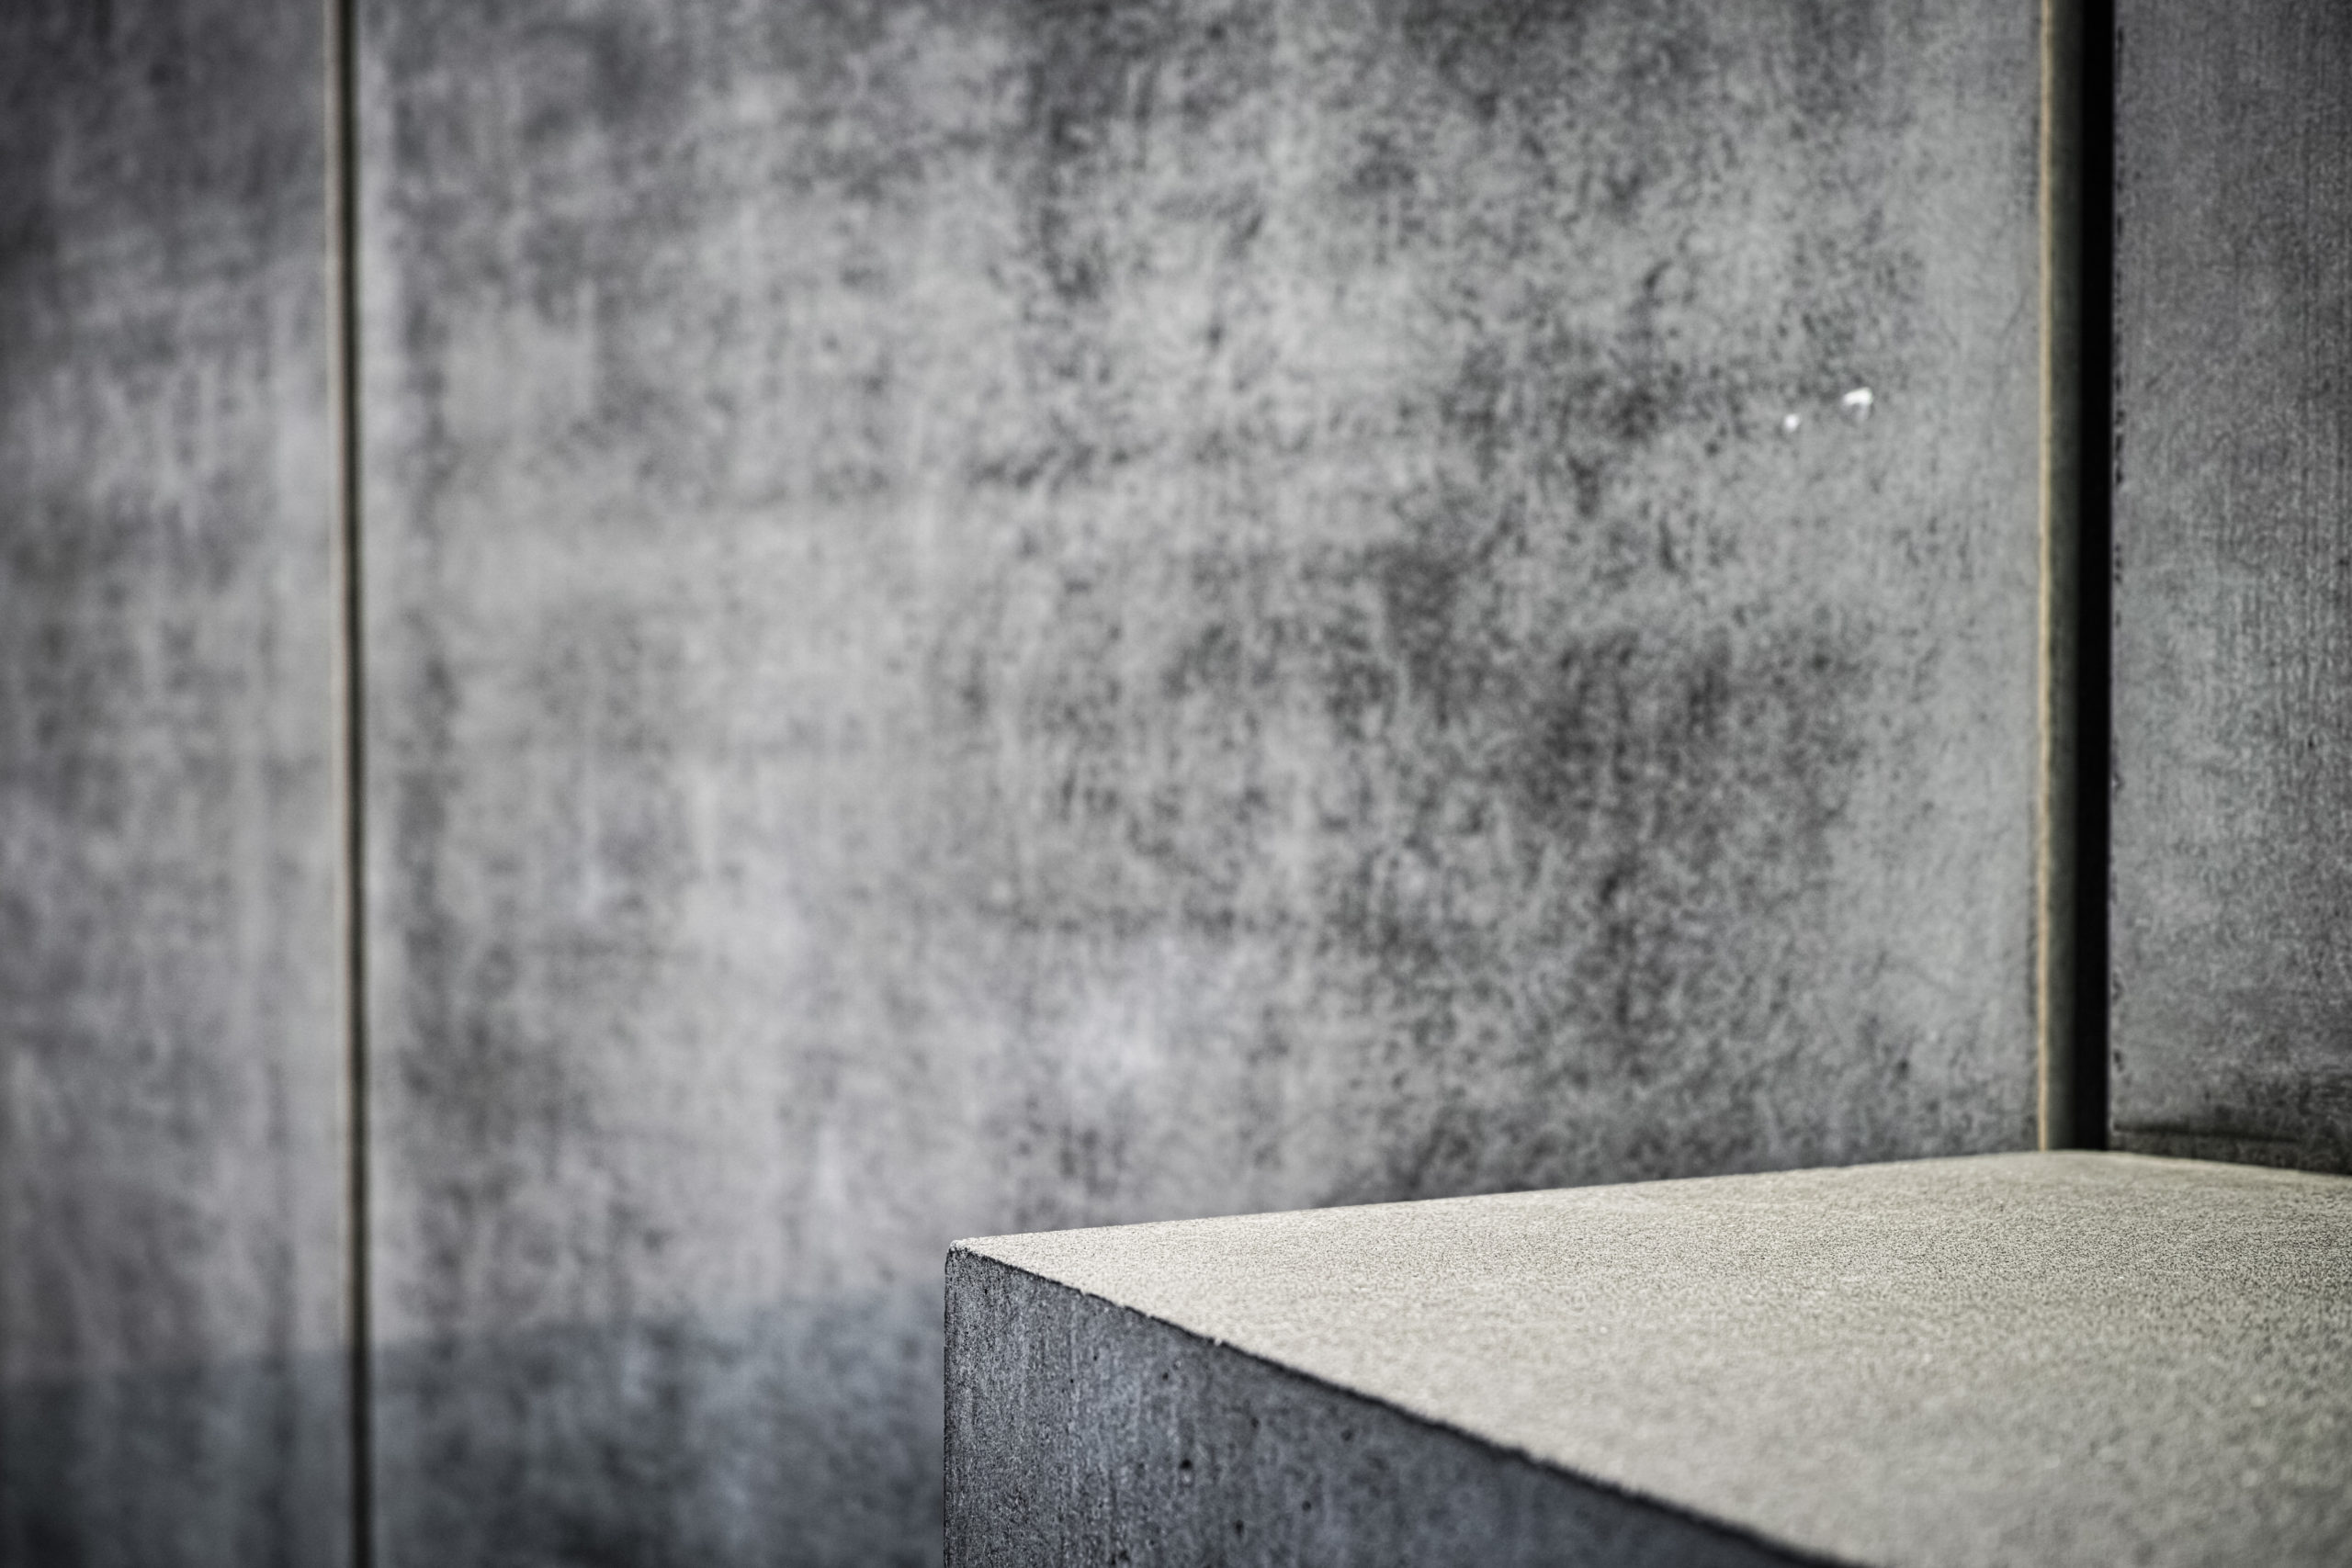 Detail of a stele of the Memorial to the Murdered Jews of Europe © Foundation Memorial